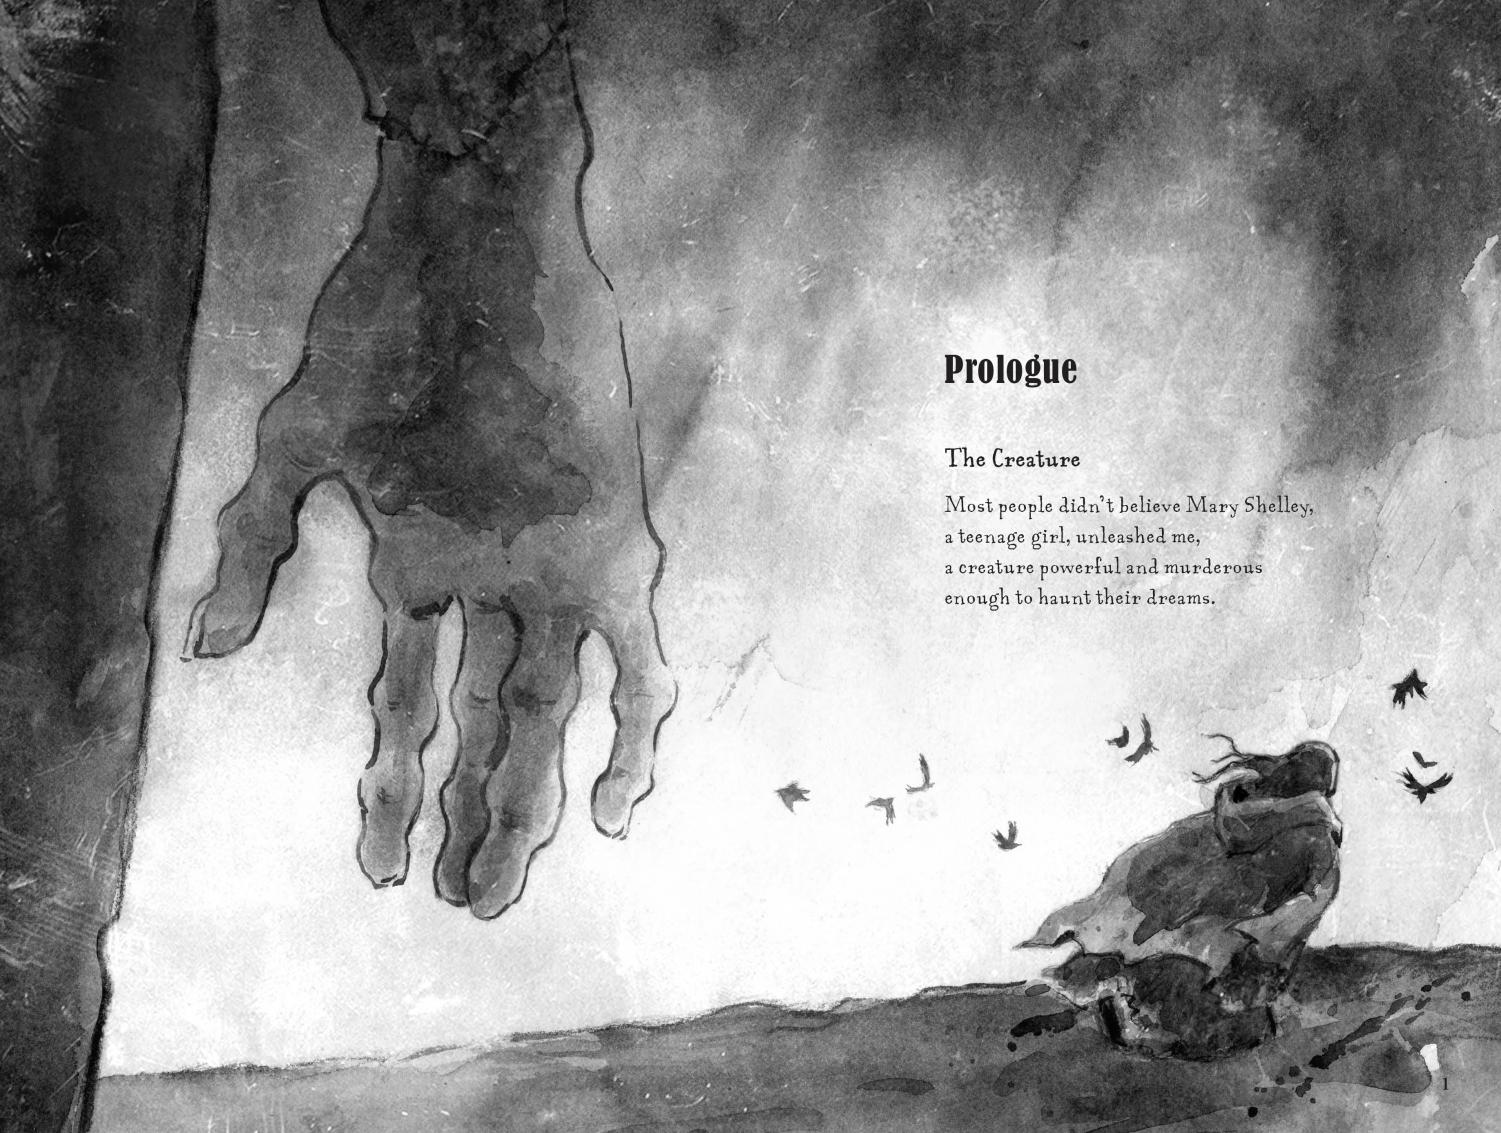 Illustration are added throughout the book to enhance the story.